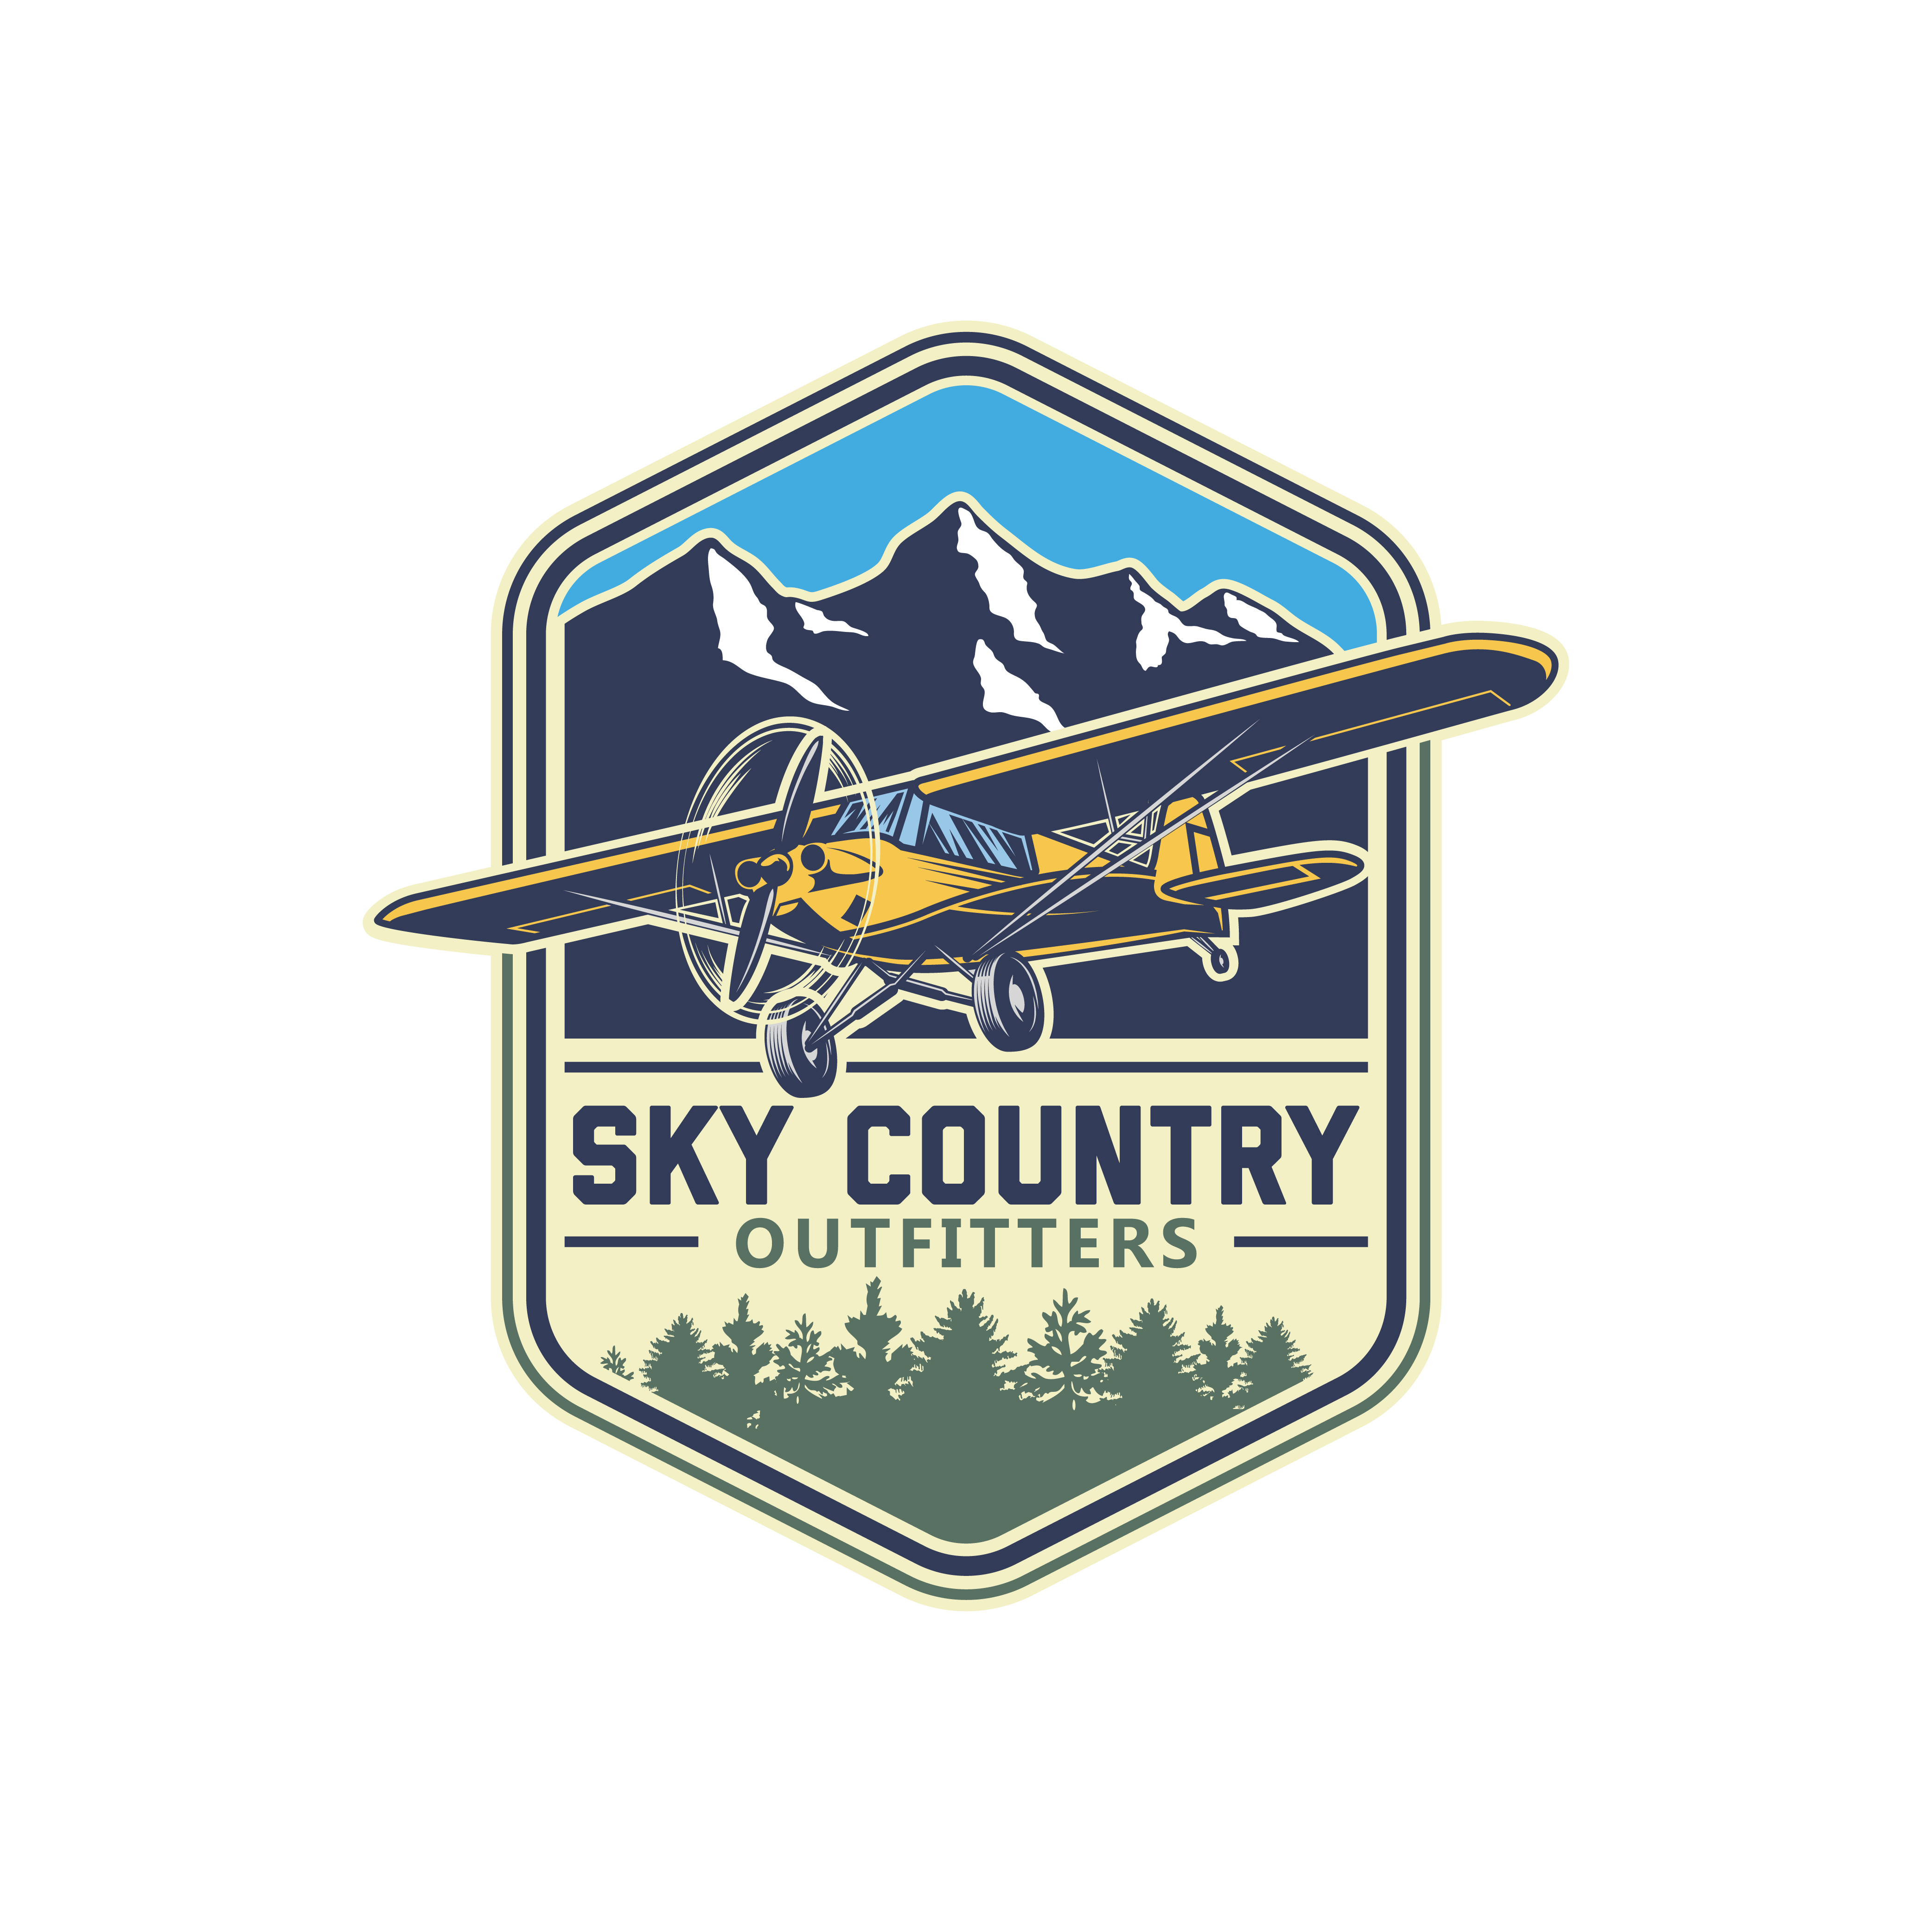 Help create a logo for premiere back country flying expeditions in (Bush Planes)